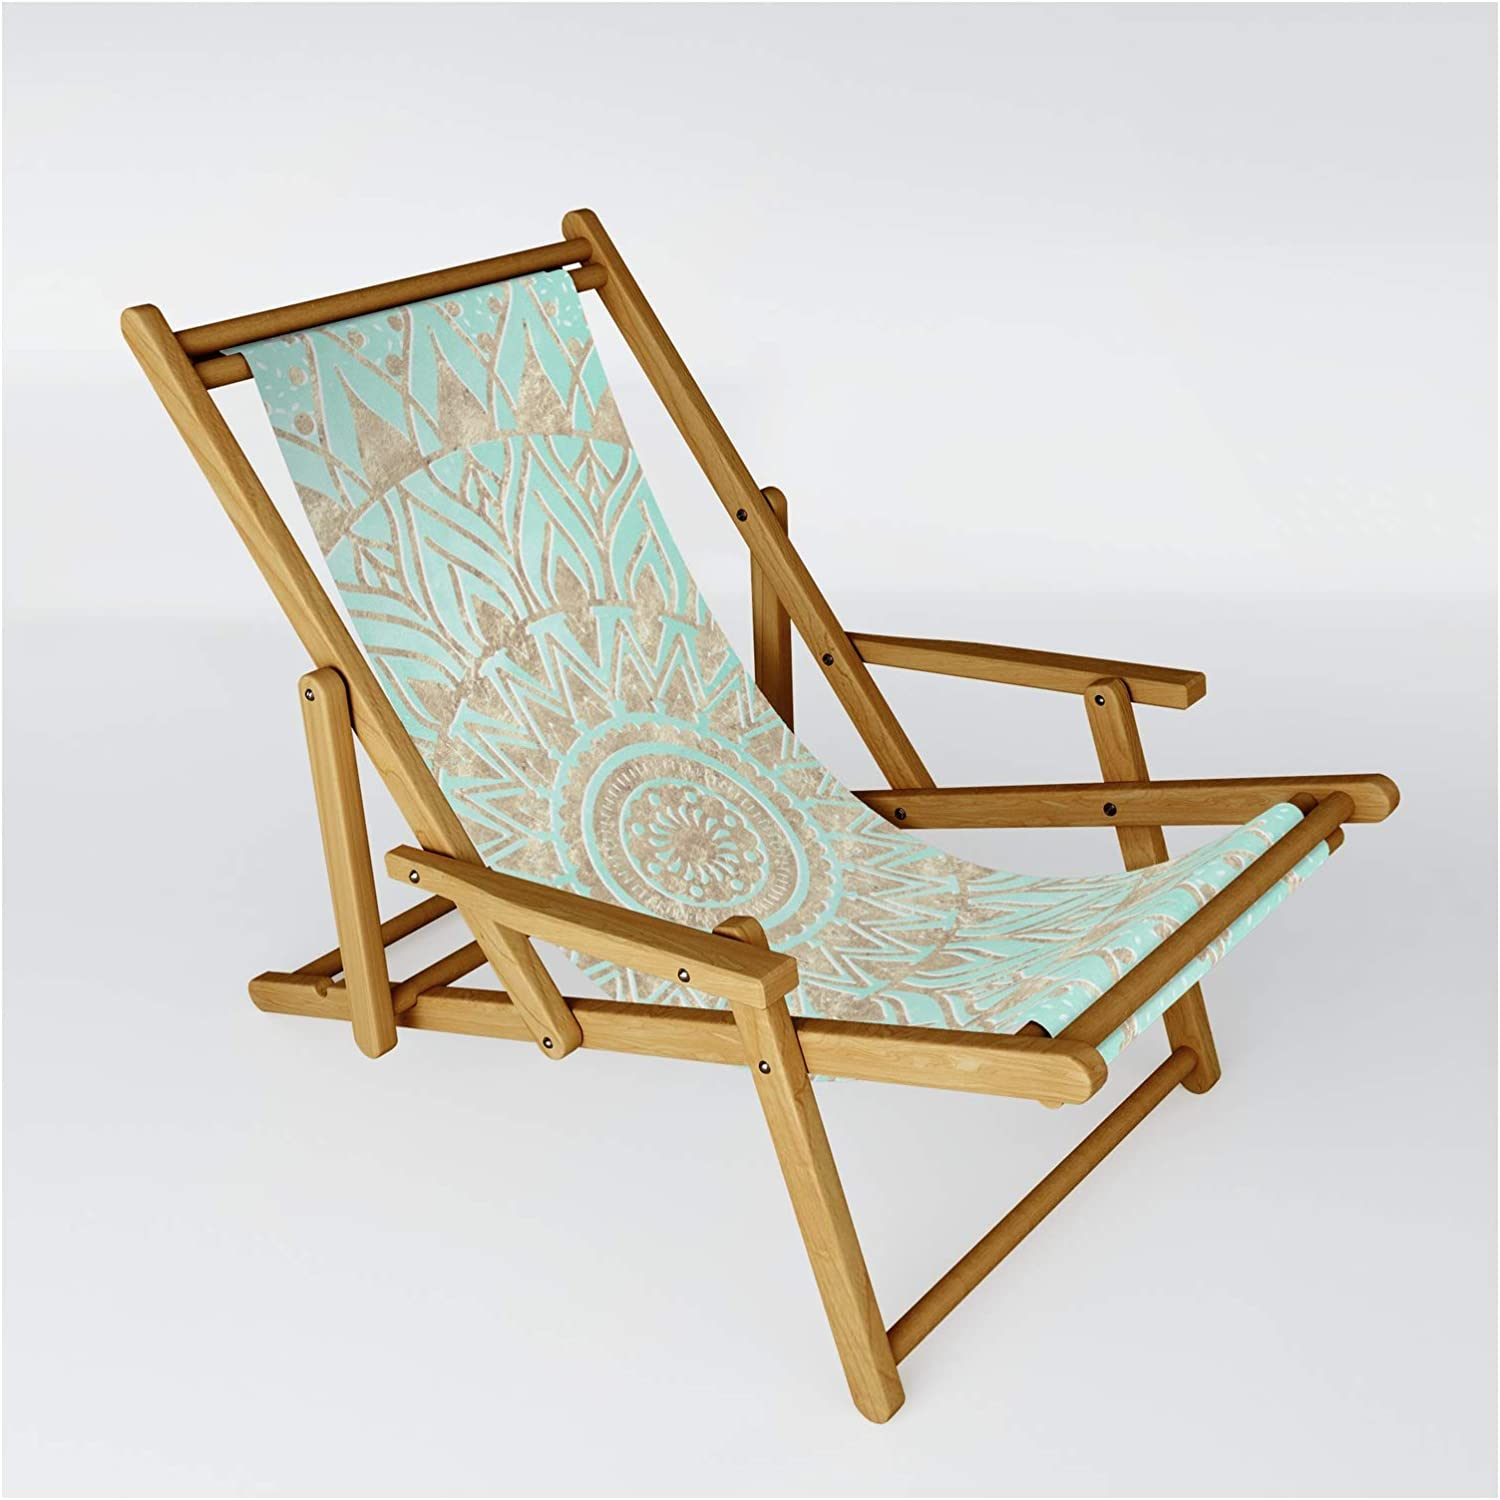 Limited time sale Society6 Mint Limited Special Price and Gold Mandala by on Inovarts Sling - Chair One